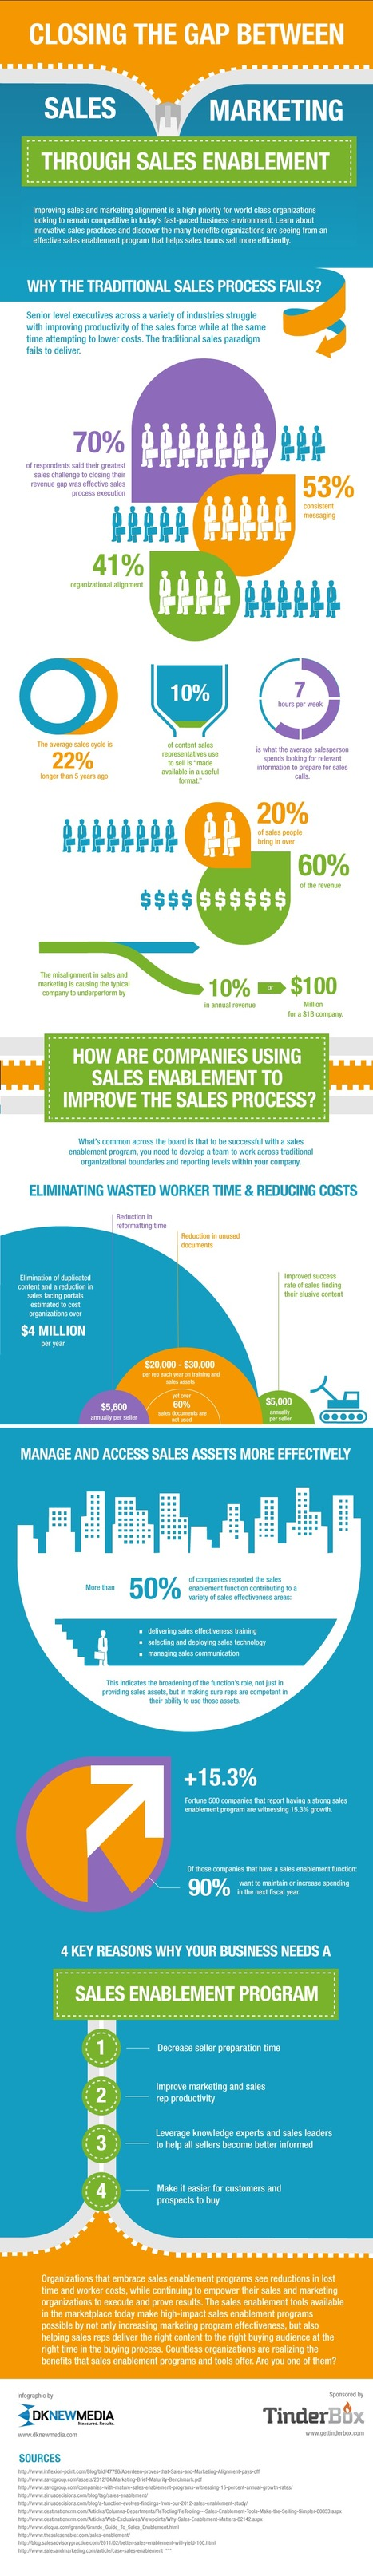 Closing the Gap Between Sales and Marketing Through Sales Enablement [INFOGRAPHIC] - TinderBox | sales readiness | Scoop.it